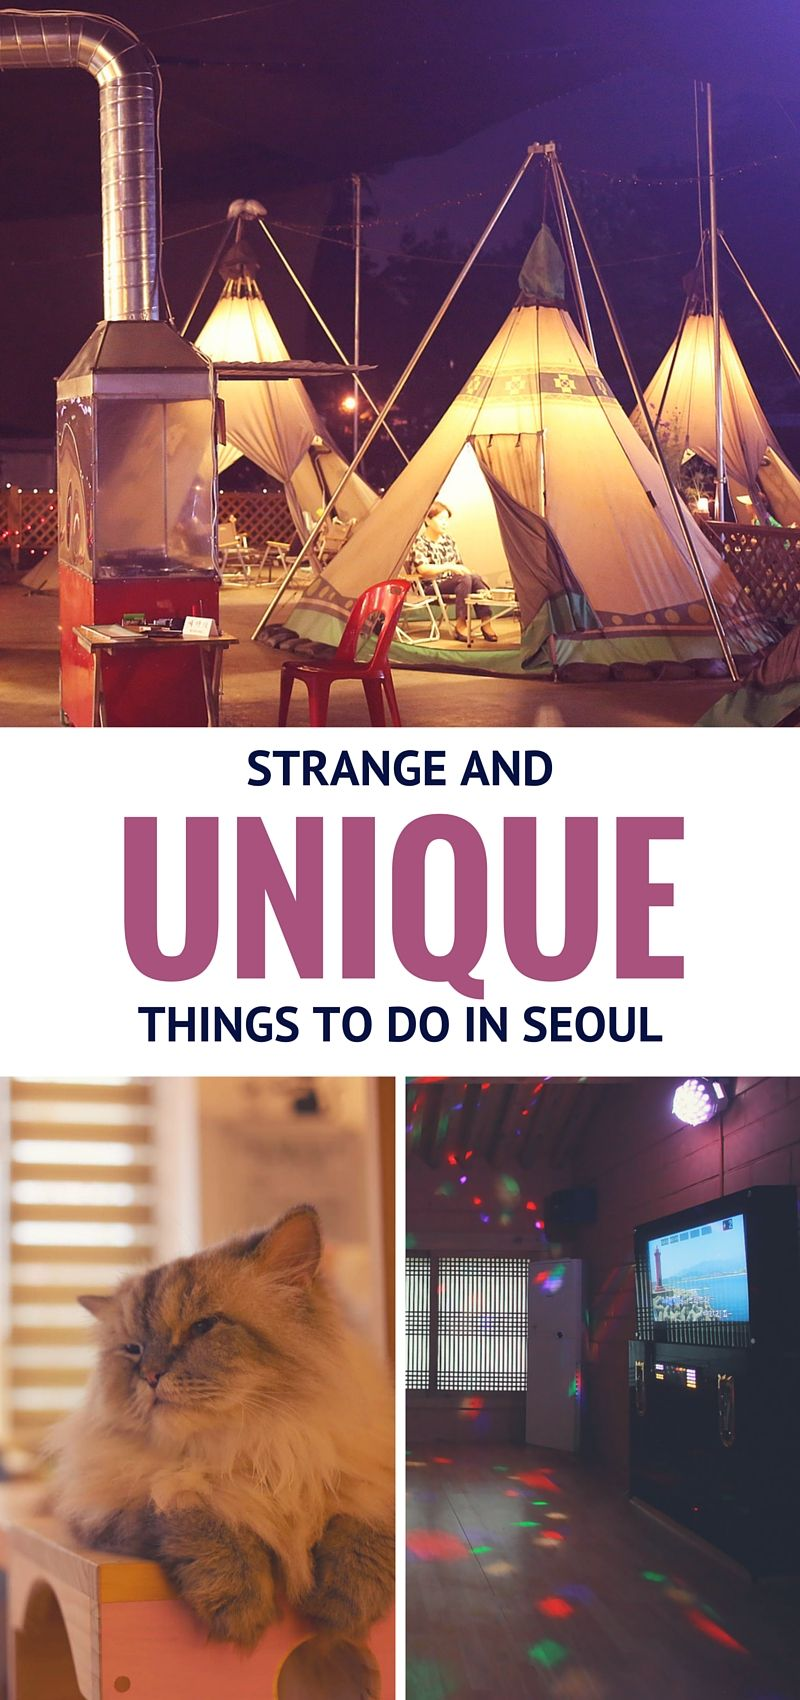 """Strange // Unique Things to do in Seoul! - """"Known for its odd combinations and unique products, Seoul has no shortage of strange offerings to visitors and residents alike. The largest city in South Korea, Seoul melds Korean influences with foreign ones like no other city. These uniquely Korean takes on marketable ideas often produce puzzling, yet wonderful, results."""""""